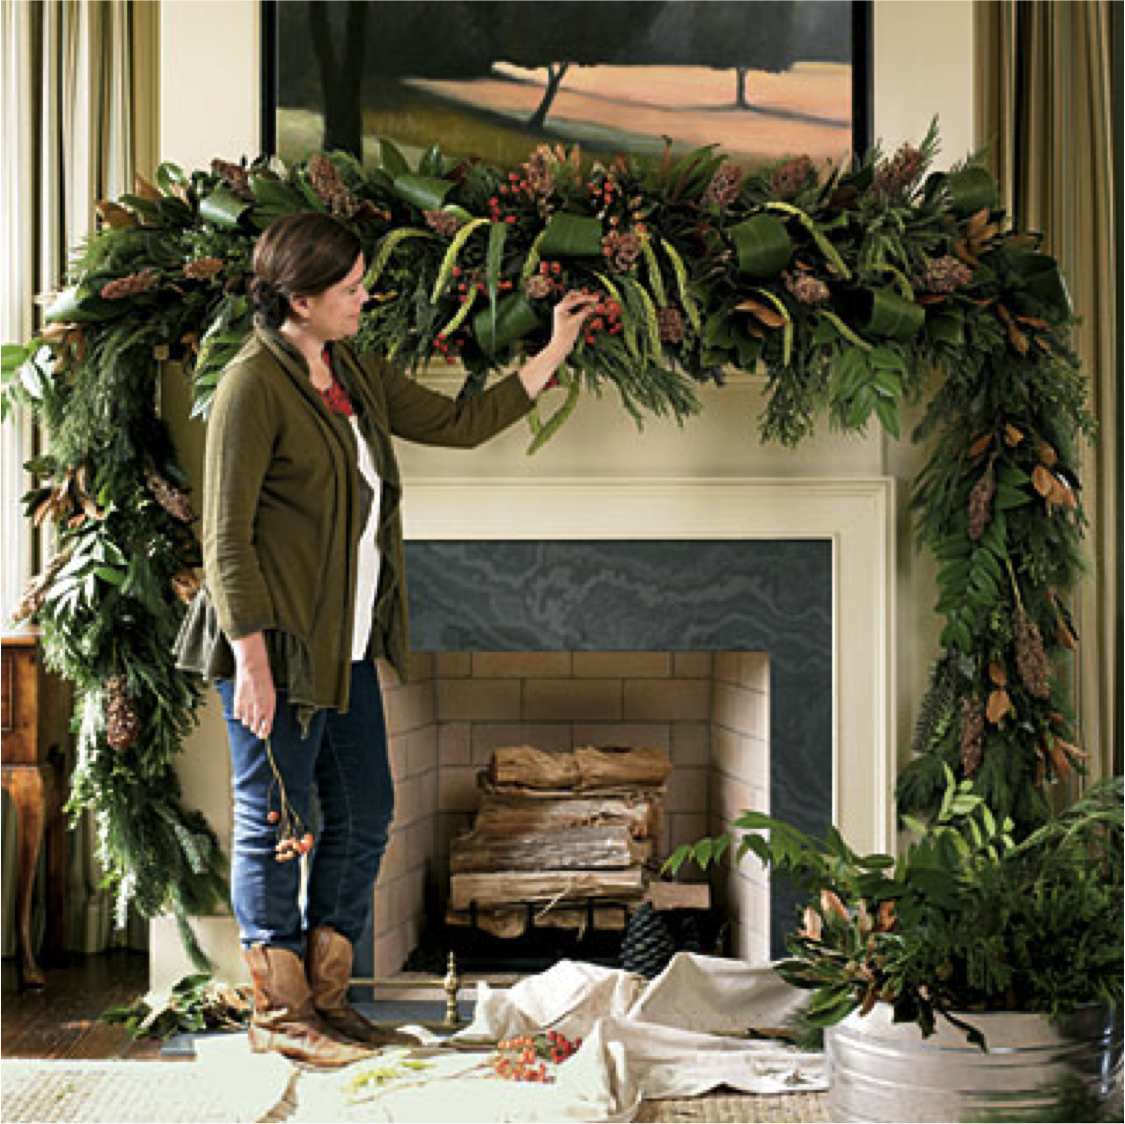 I love this mantle idea SO much I used it as my inspiration for my Christmas mantle last year. This wasn't nearly as difficult as it looks to do! I used fresh garland (the cheap stuff from Home Depot)and intertwined it with fresh magnolia leaves. Then I added large sugar pine cones, fresh winterberry and some dried floral until it felt done! I love the way it looked and felt great that I did it pretty economically (under $100). The BEST part is that the magnolia (the expensive part) dried beautifully and I'll re-use that again this year!